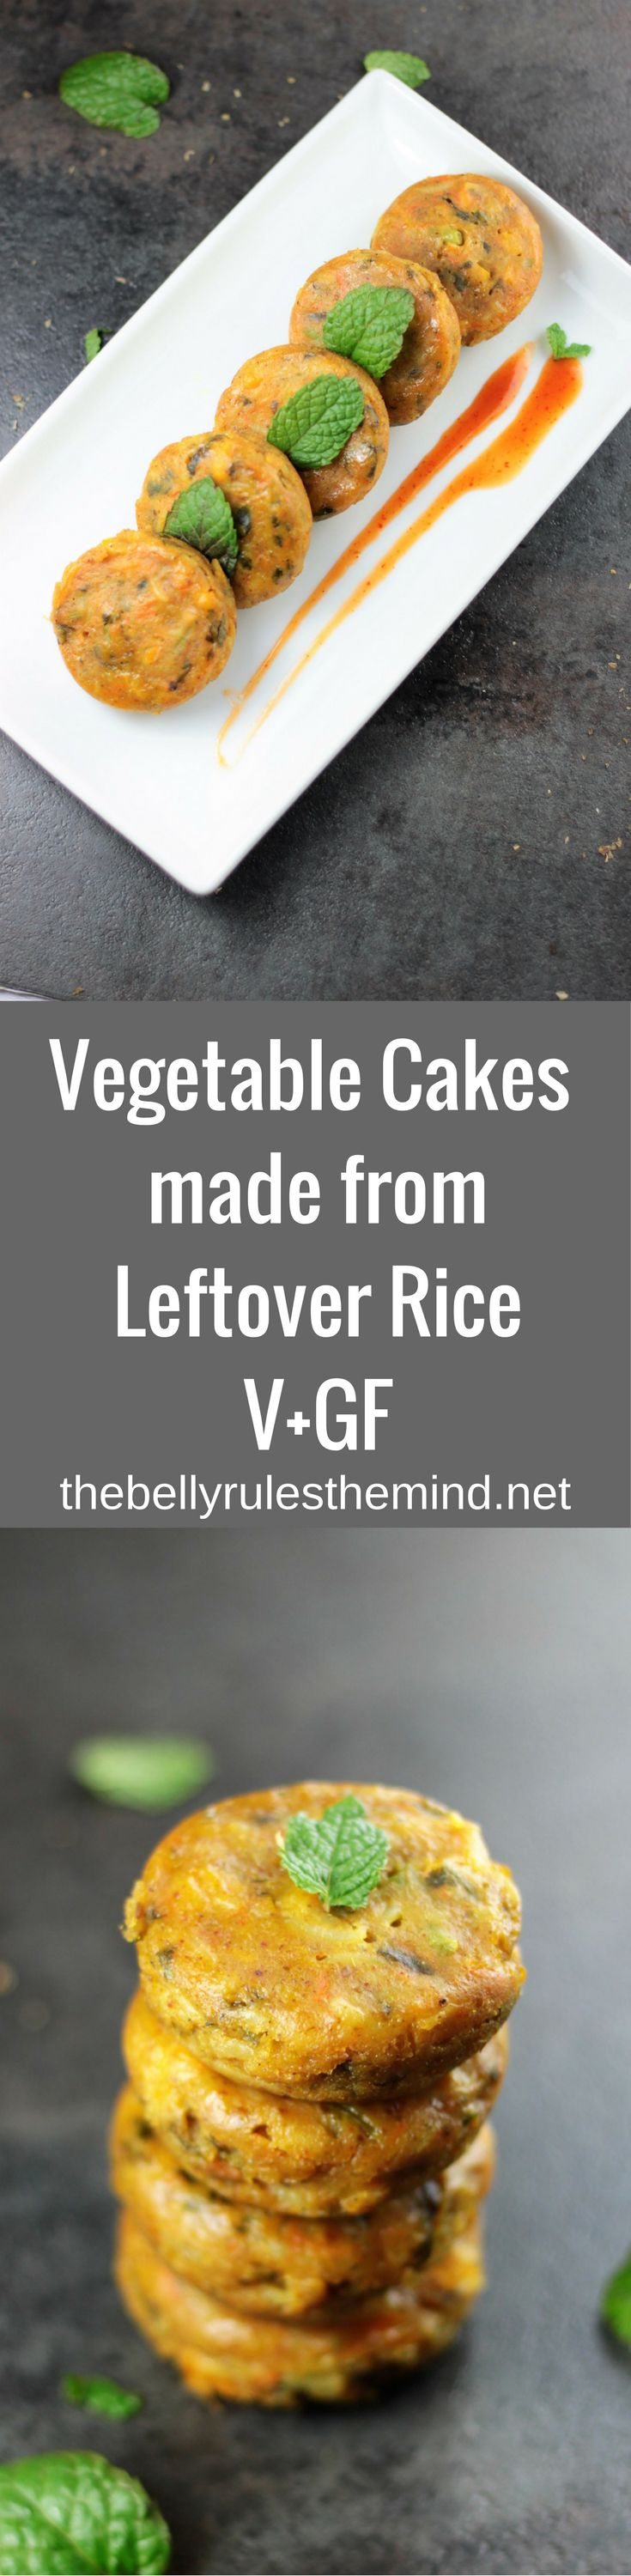 Have a bowl of leftover rice? Wondering what to do with it?Make these Savory Vegetable Cakes. Loaded with nutrition from grains, vegetables & protein (V+GF) |www.thebellyrulesthemind.net @bellyrulesdmind